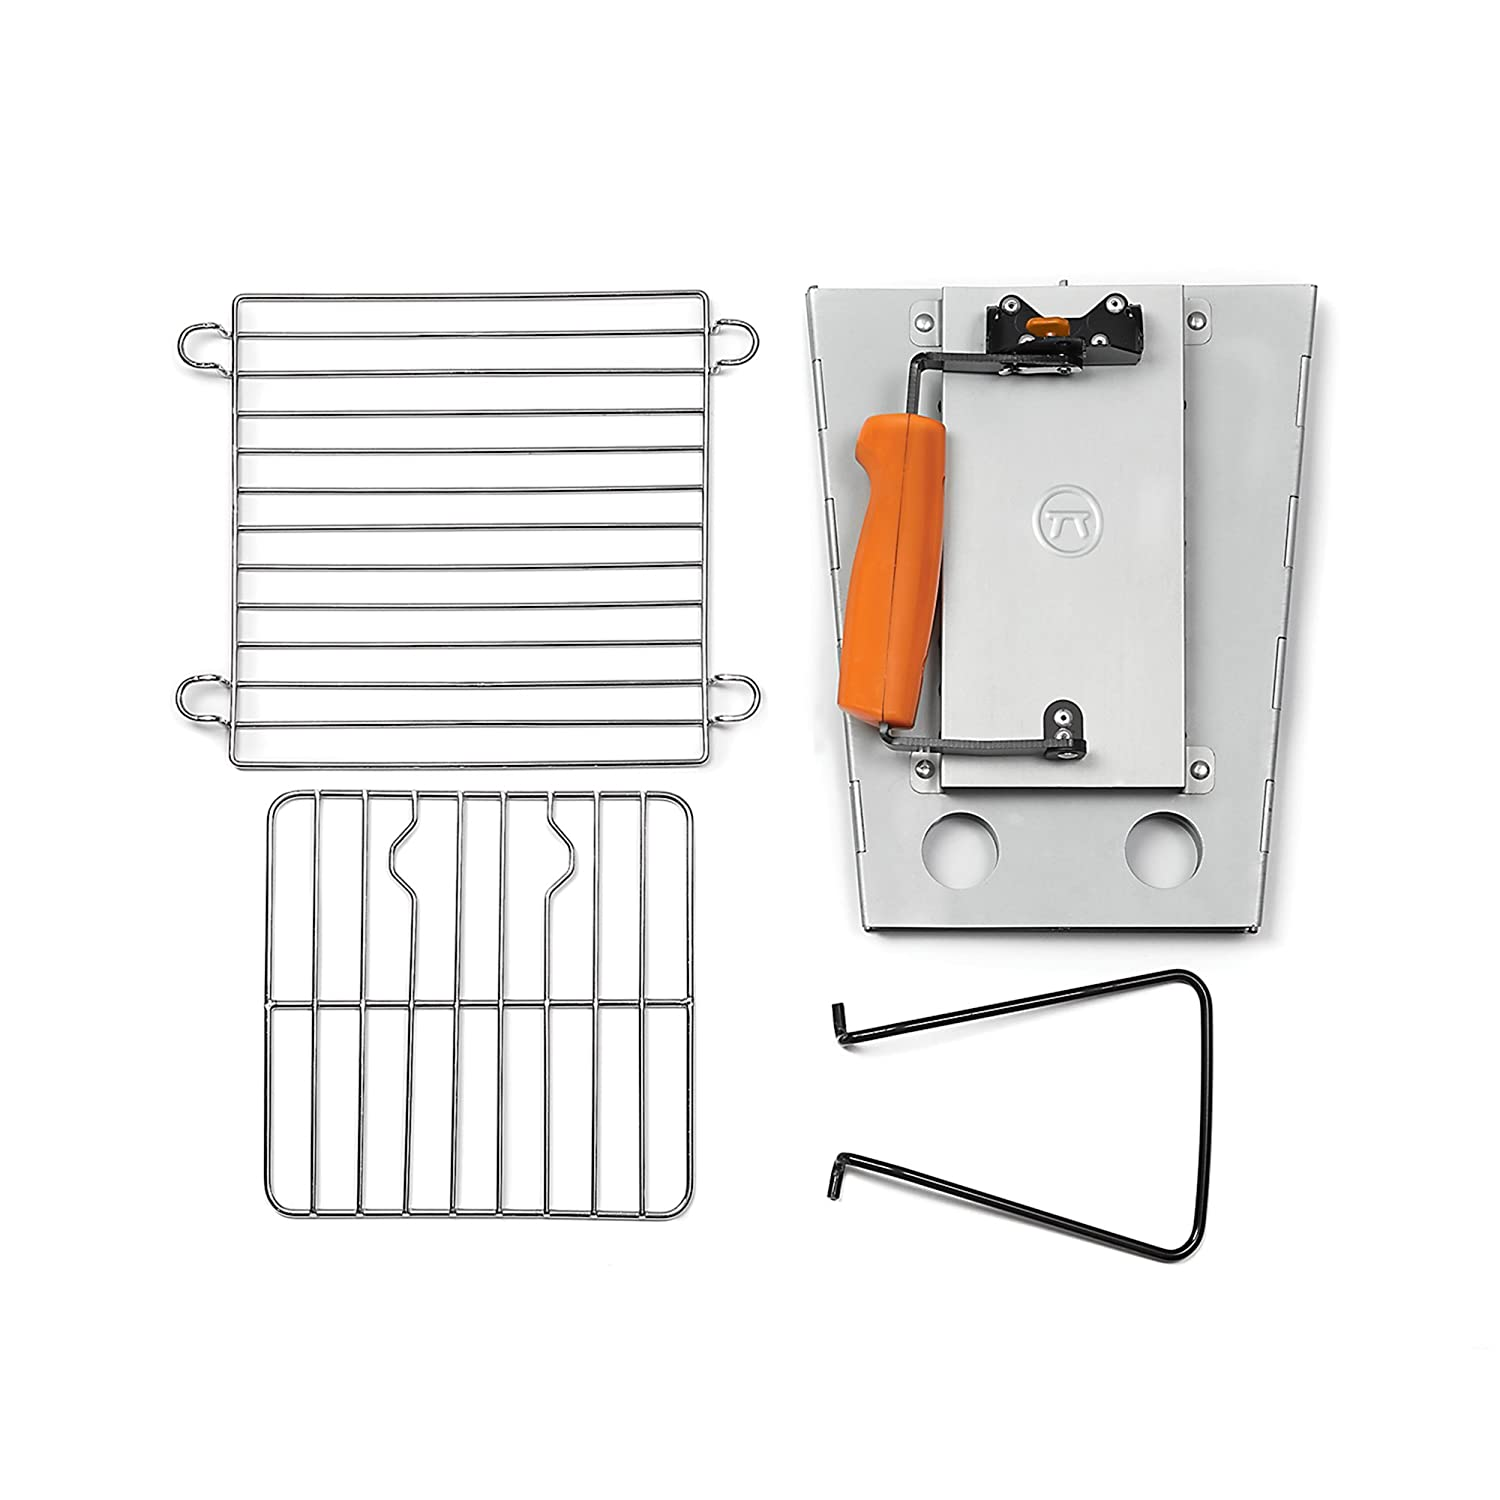 Outset 76356 Collapsible Camping Grill and Chimney Starter